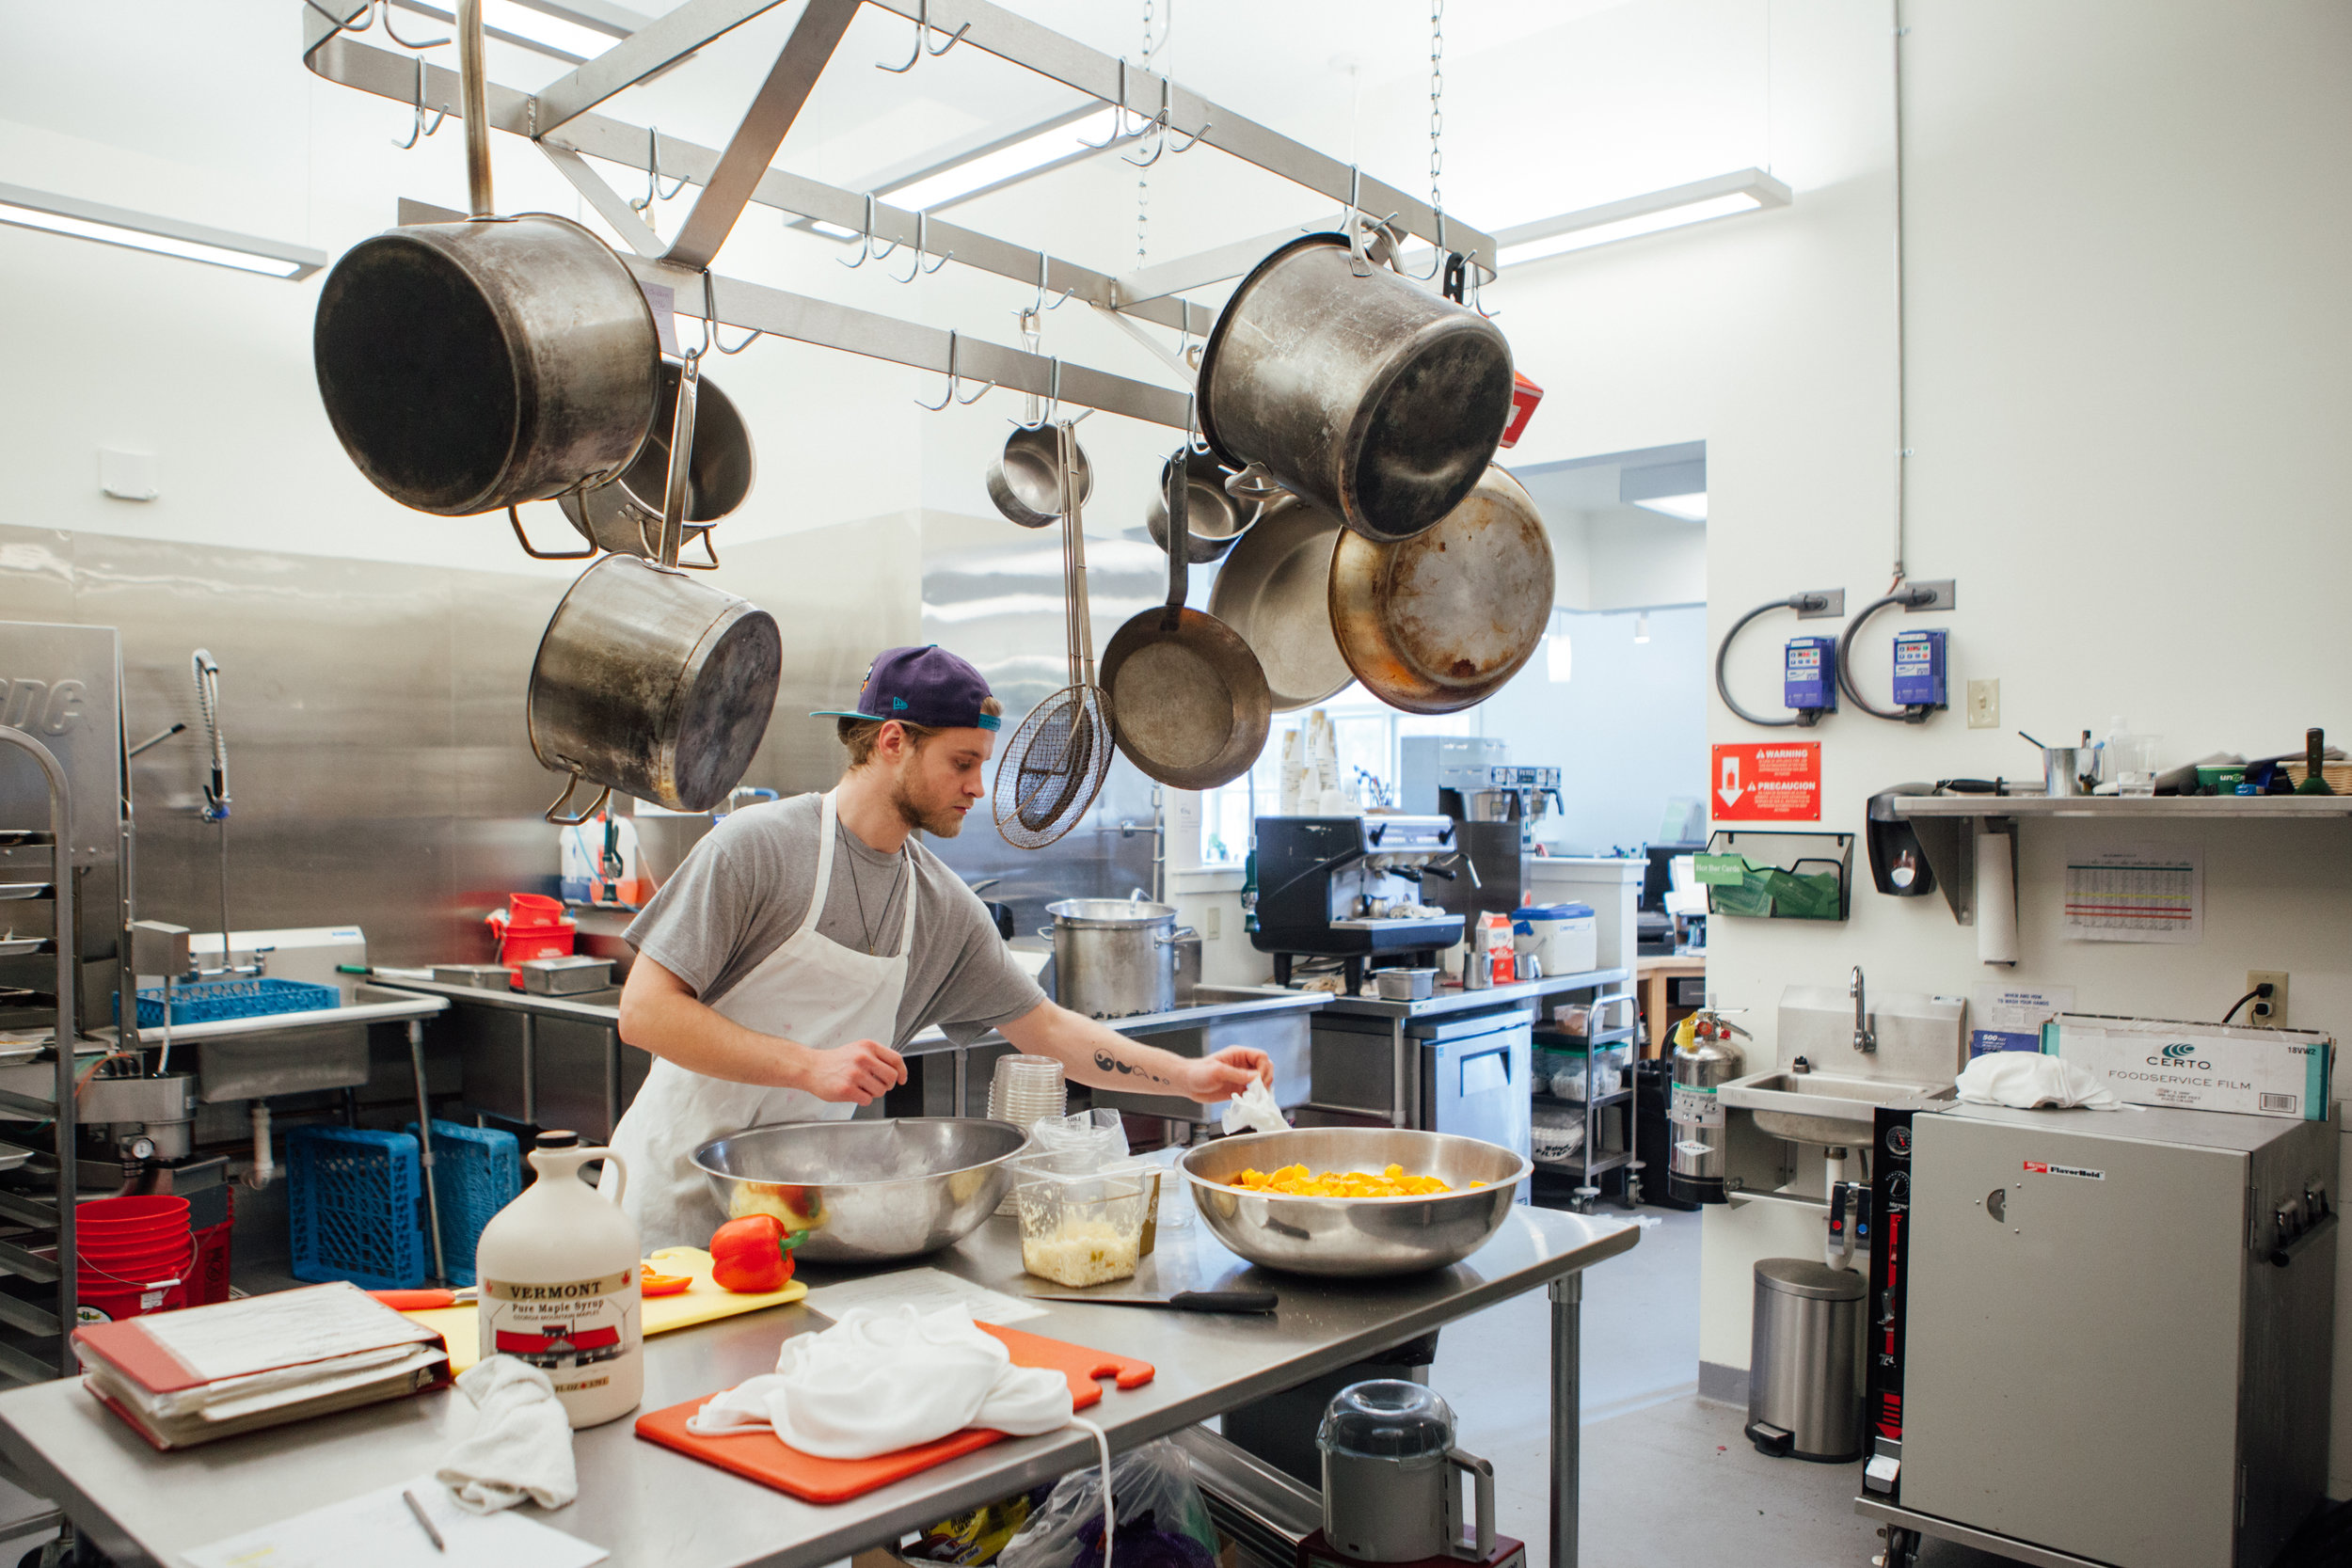 Our talented cook Jason prepares a salad in our much bigger and better new kitchen space!